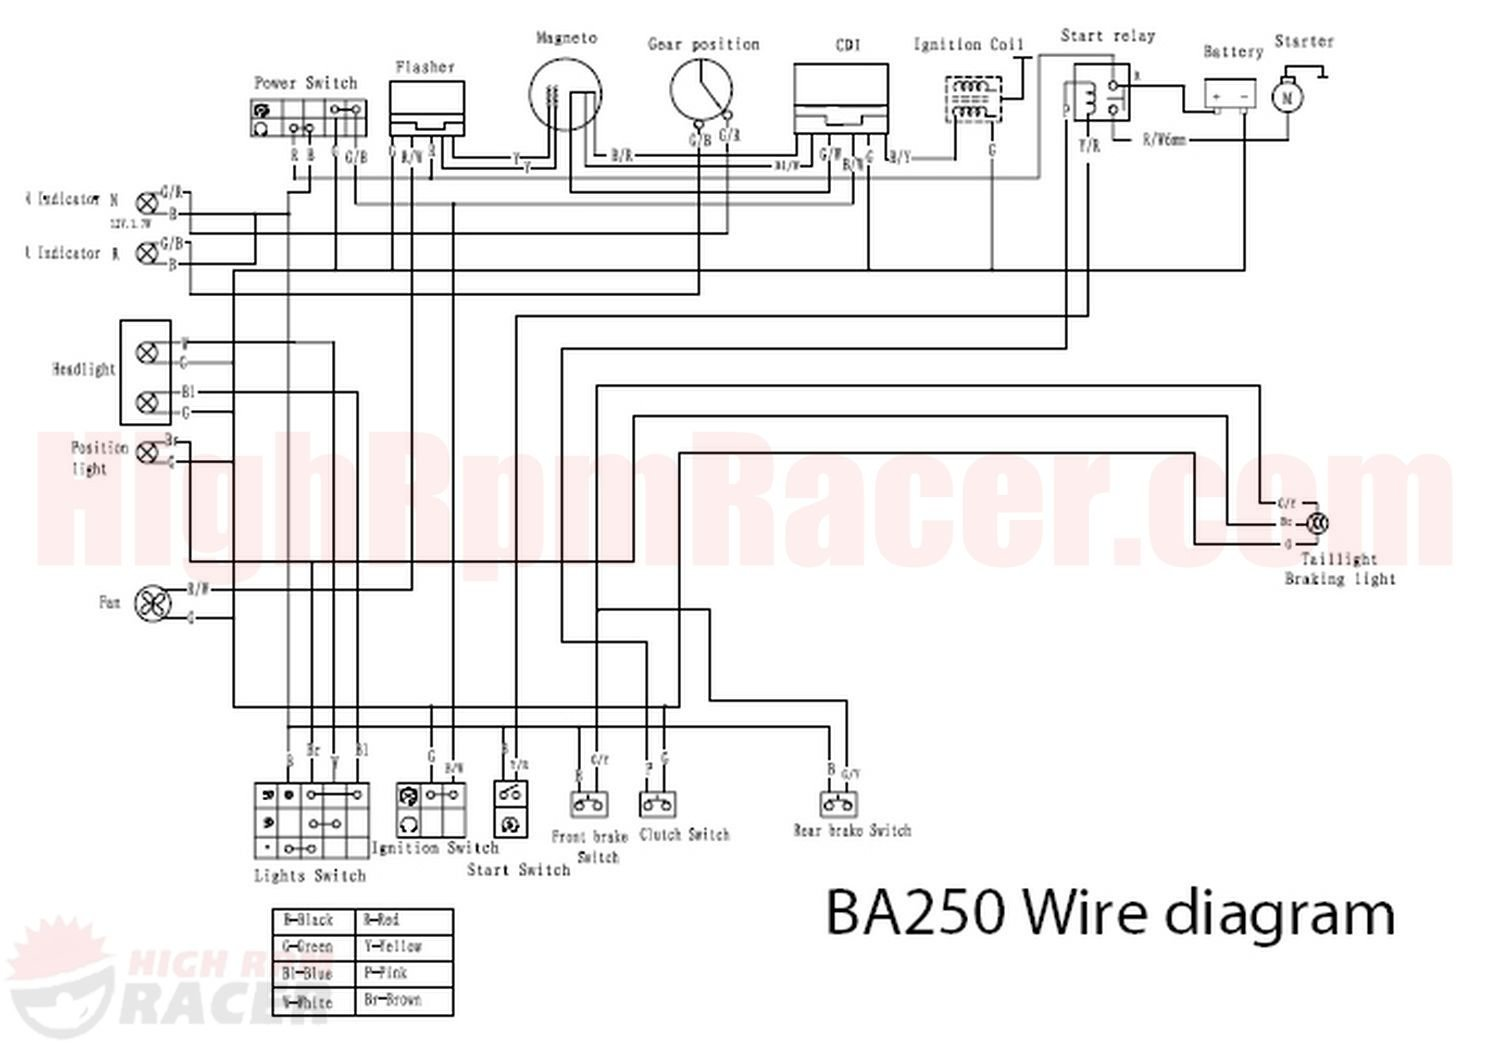 Wiring Diagrams Atv Baja 250 Linhai 2005 - wiring diagram on ... on